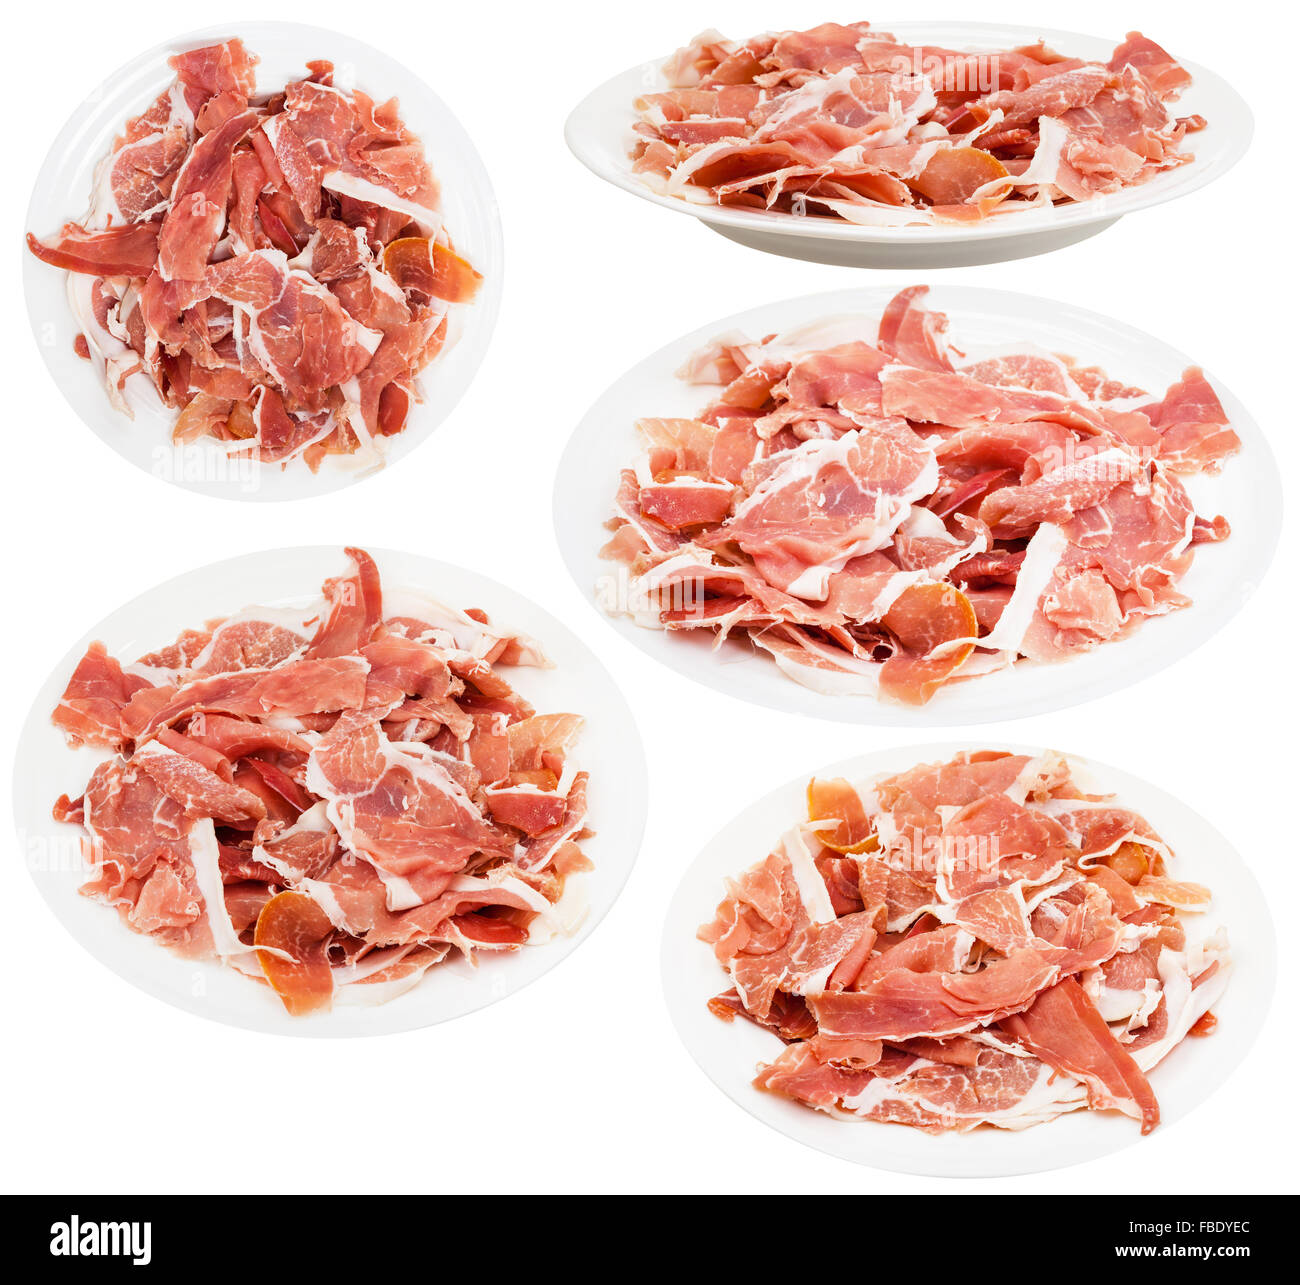 set of plates with slaced dry-cured ham isolated on white background - Stock Image